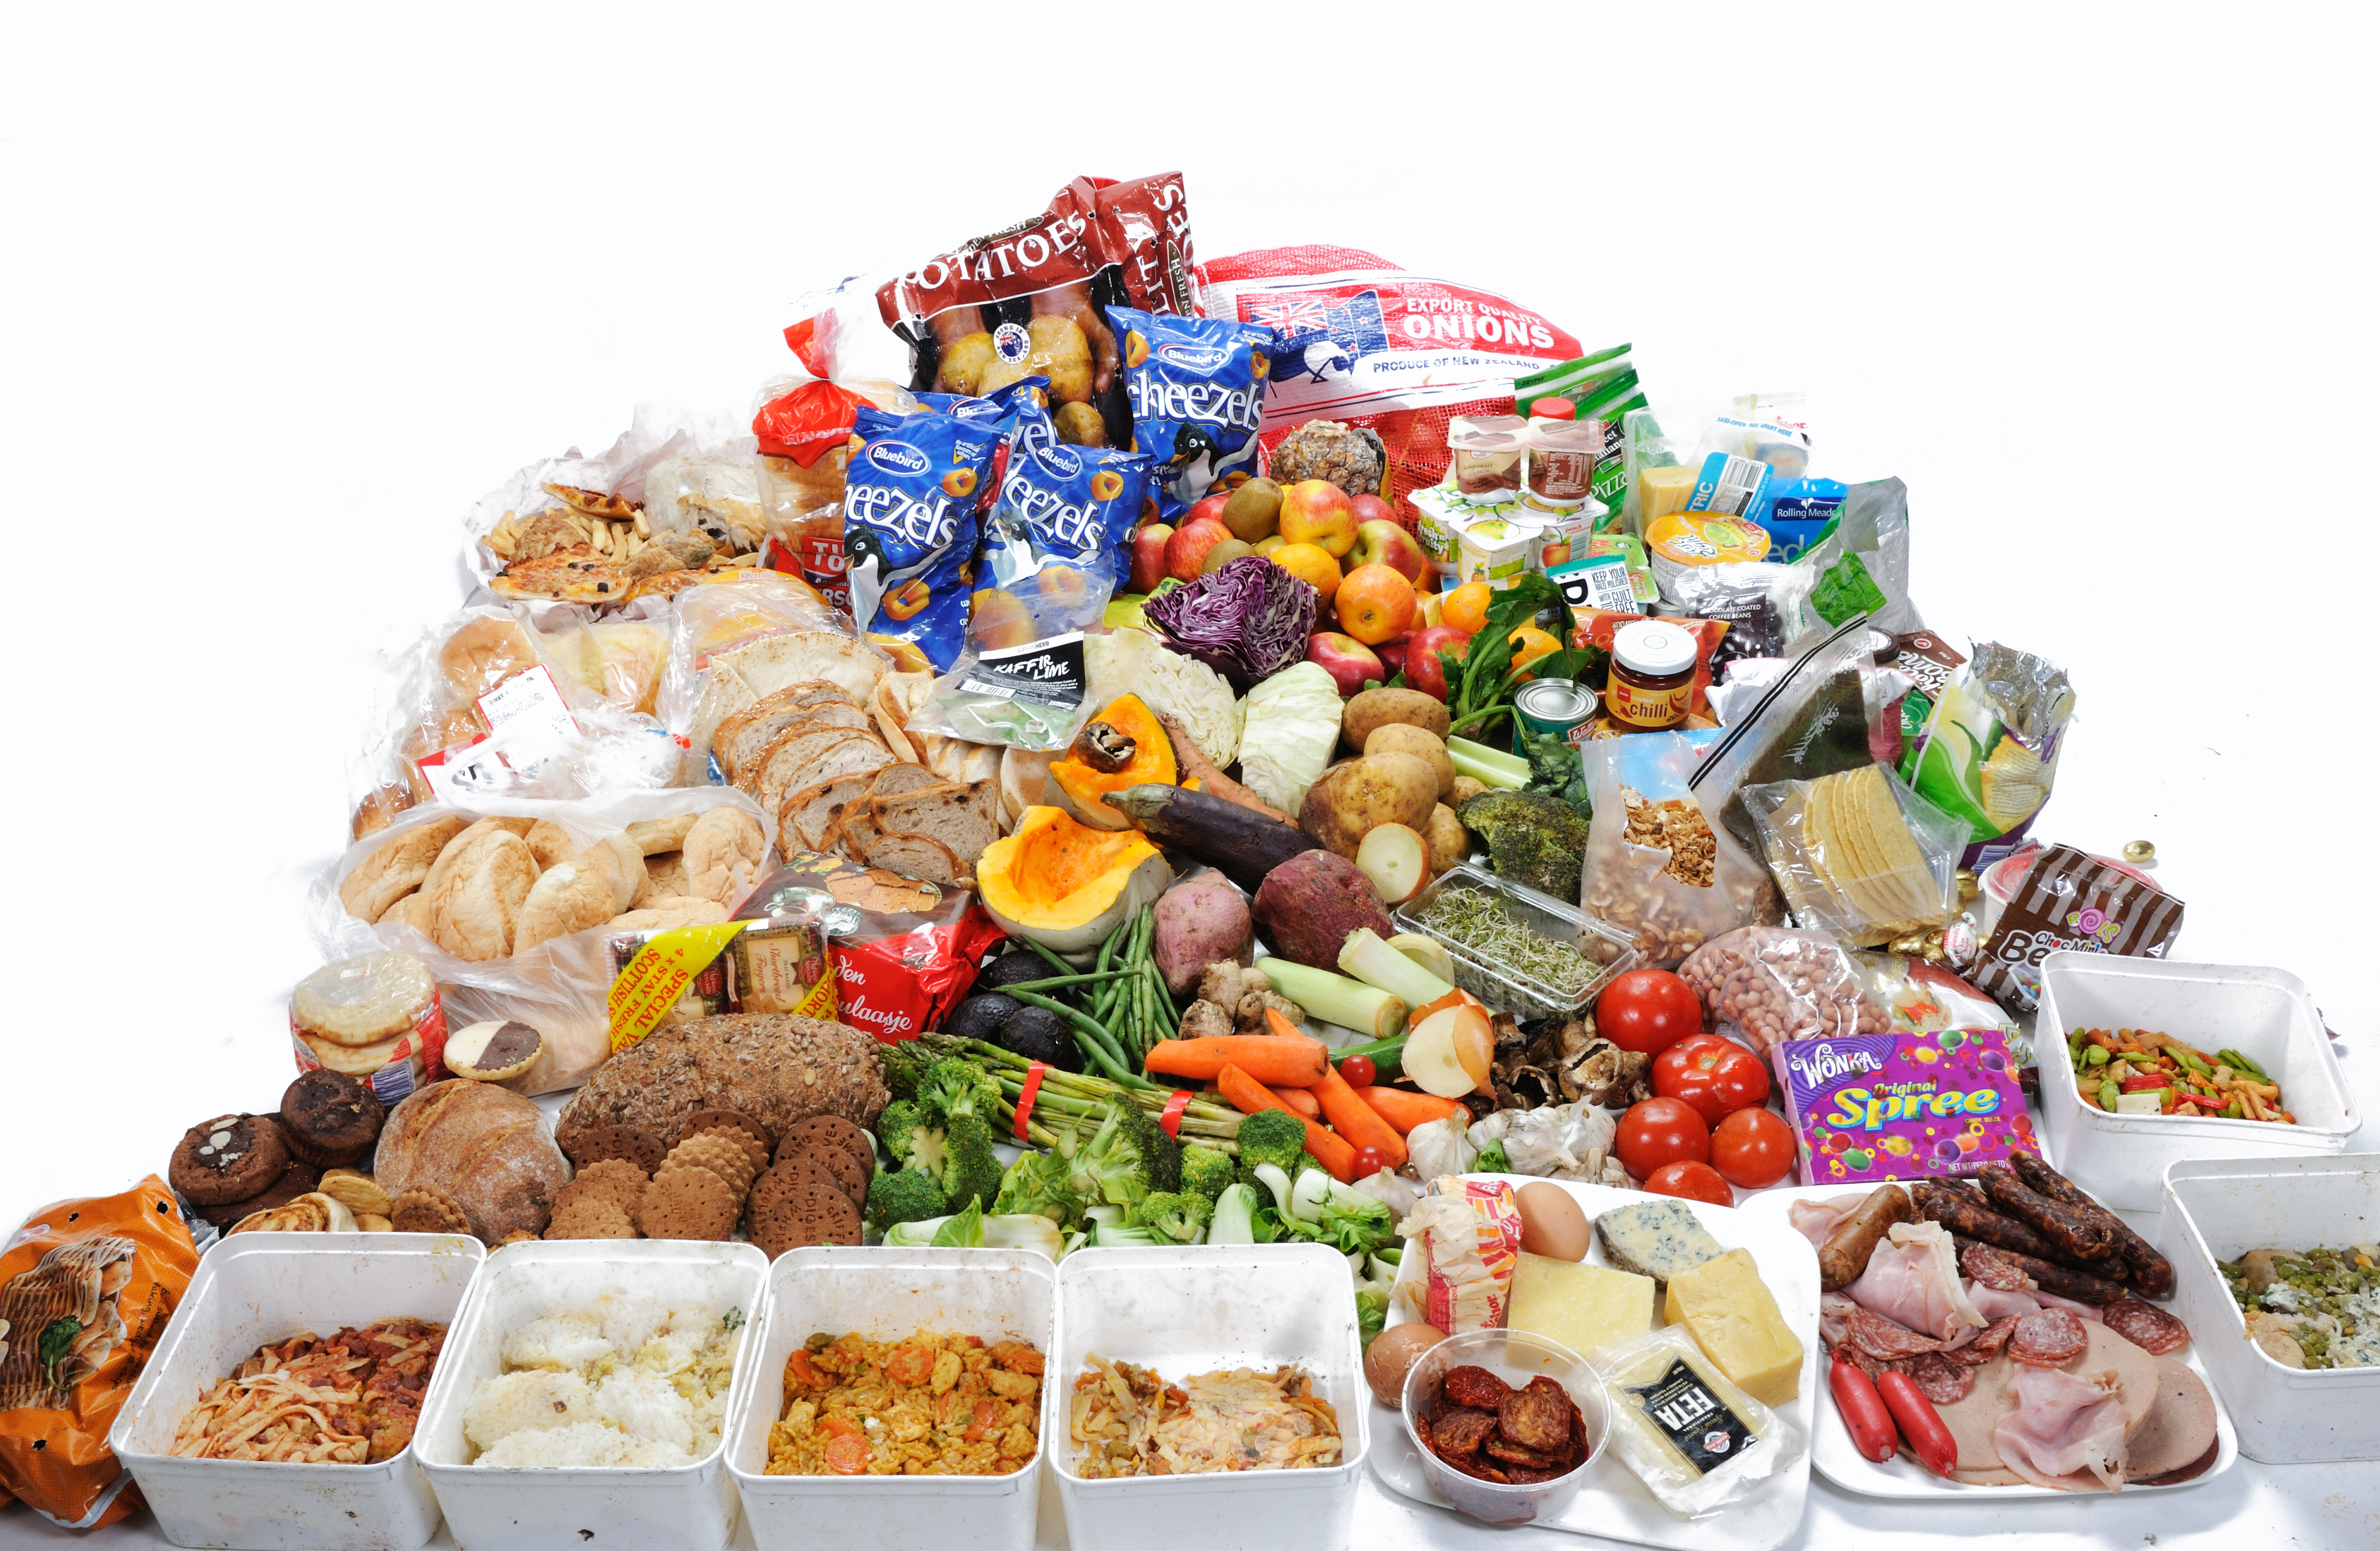 Dealing with food waste